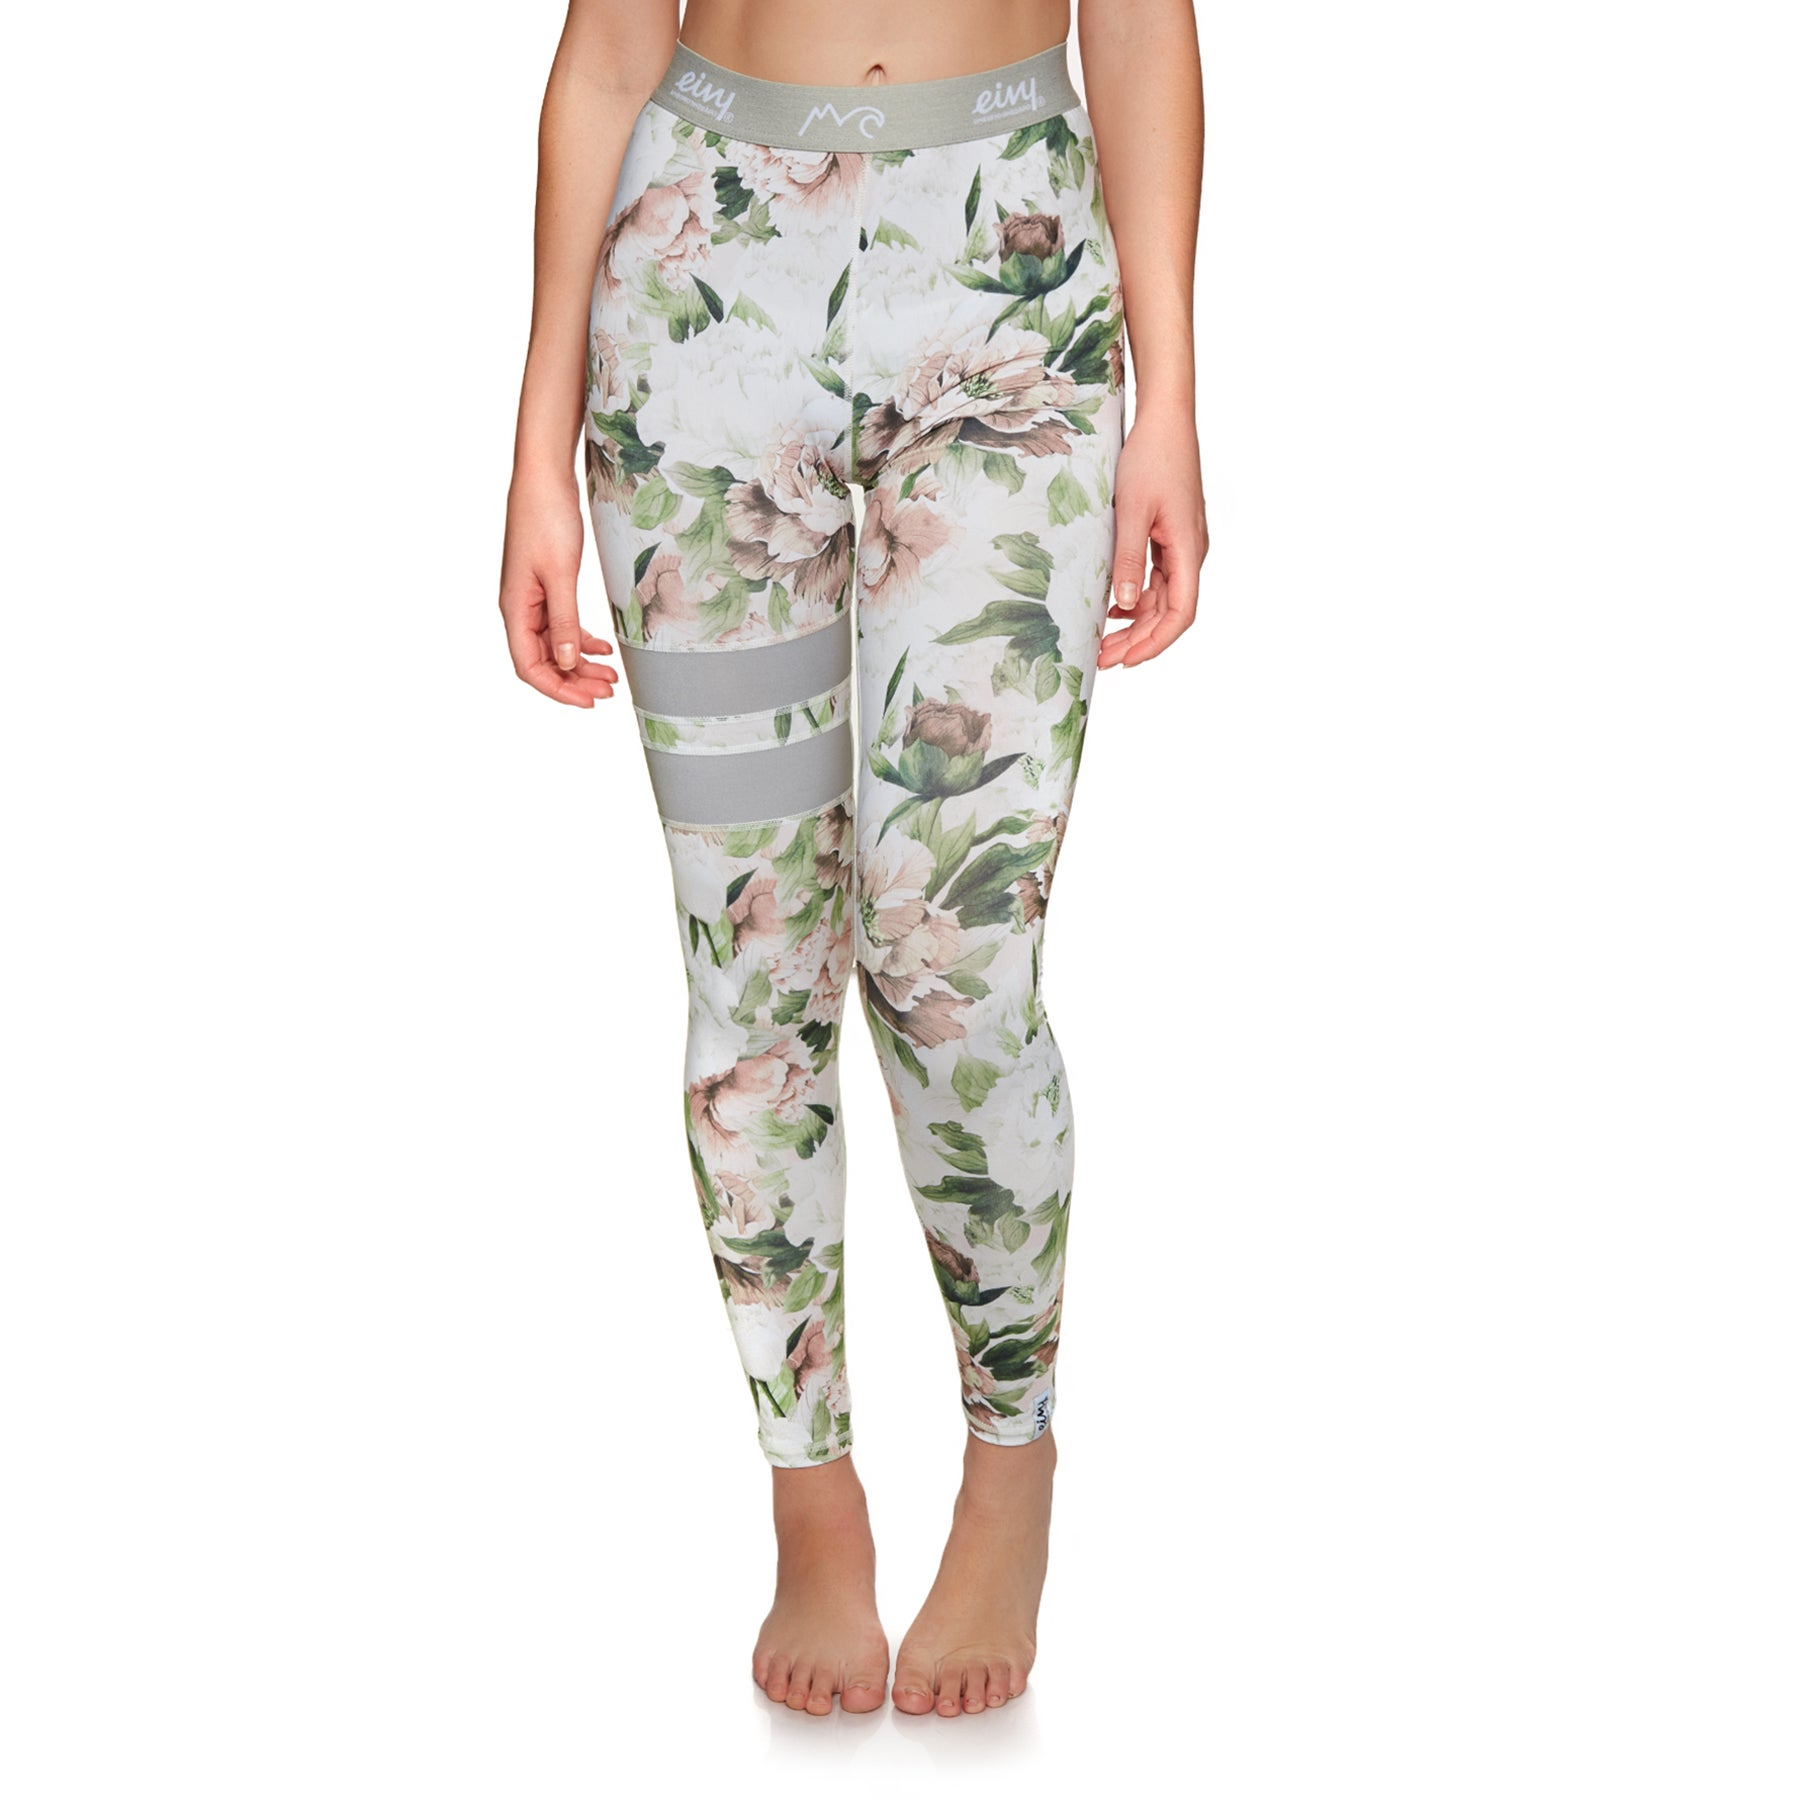 Eivy Icecold Bl Bloom L Base Layer Leggings - Bloom